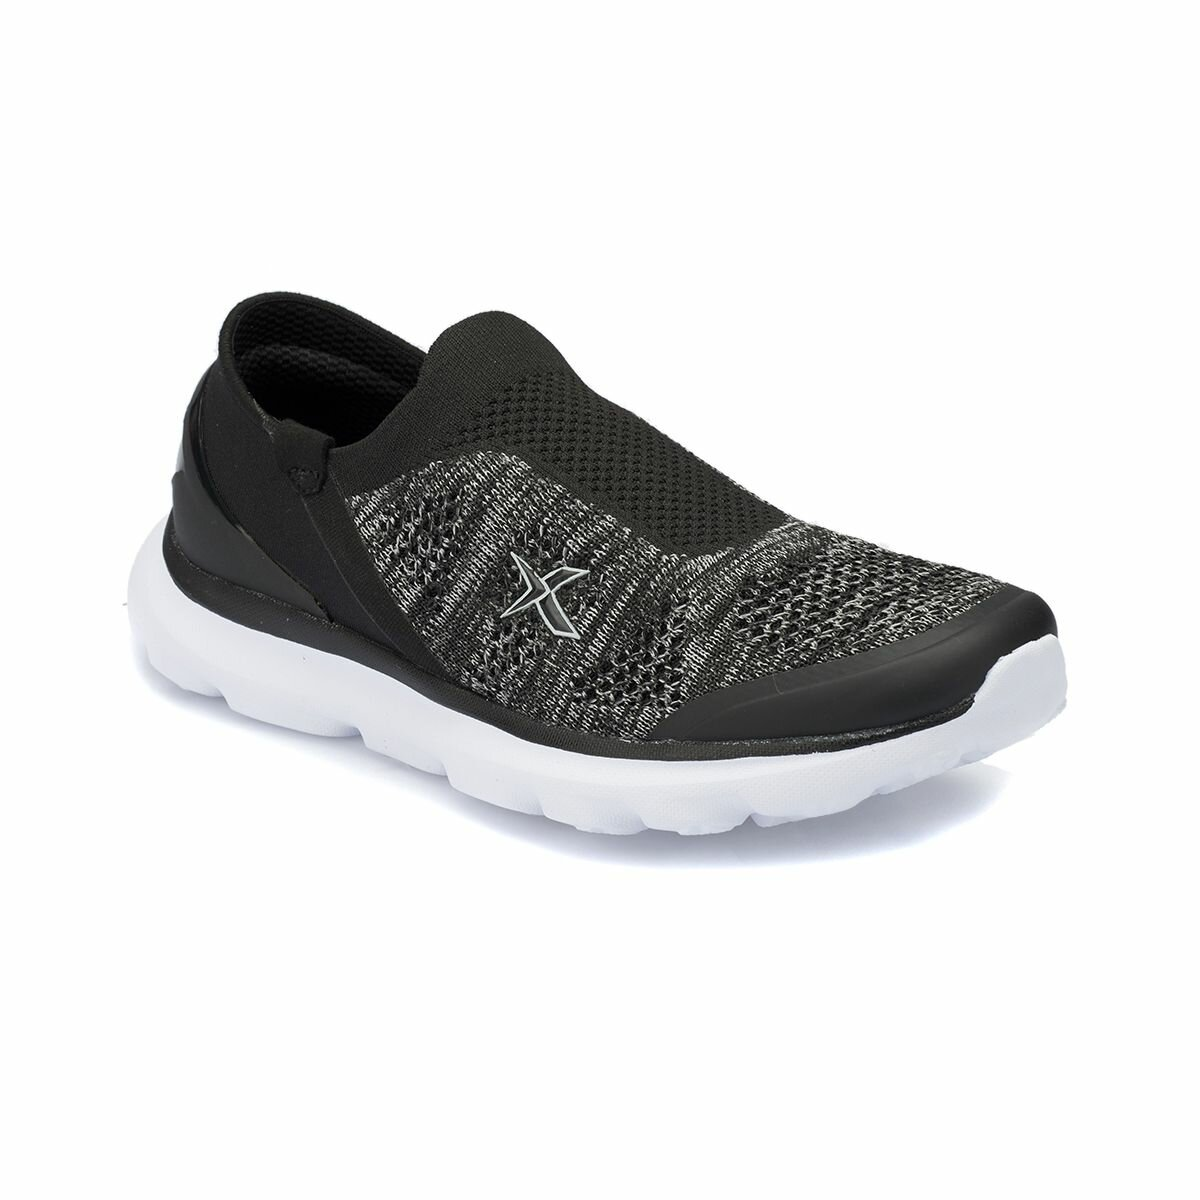 FLO FLEX W Black Women Slip On Shoes KINETIX